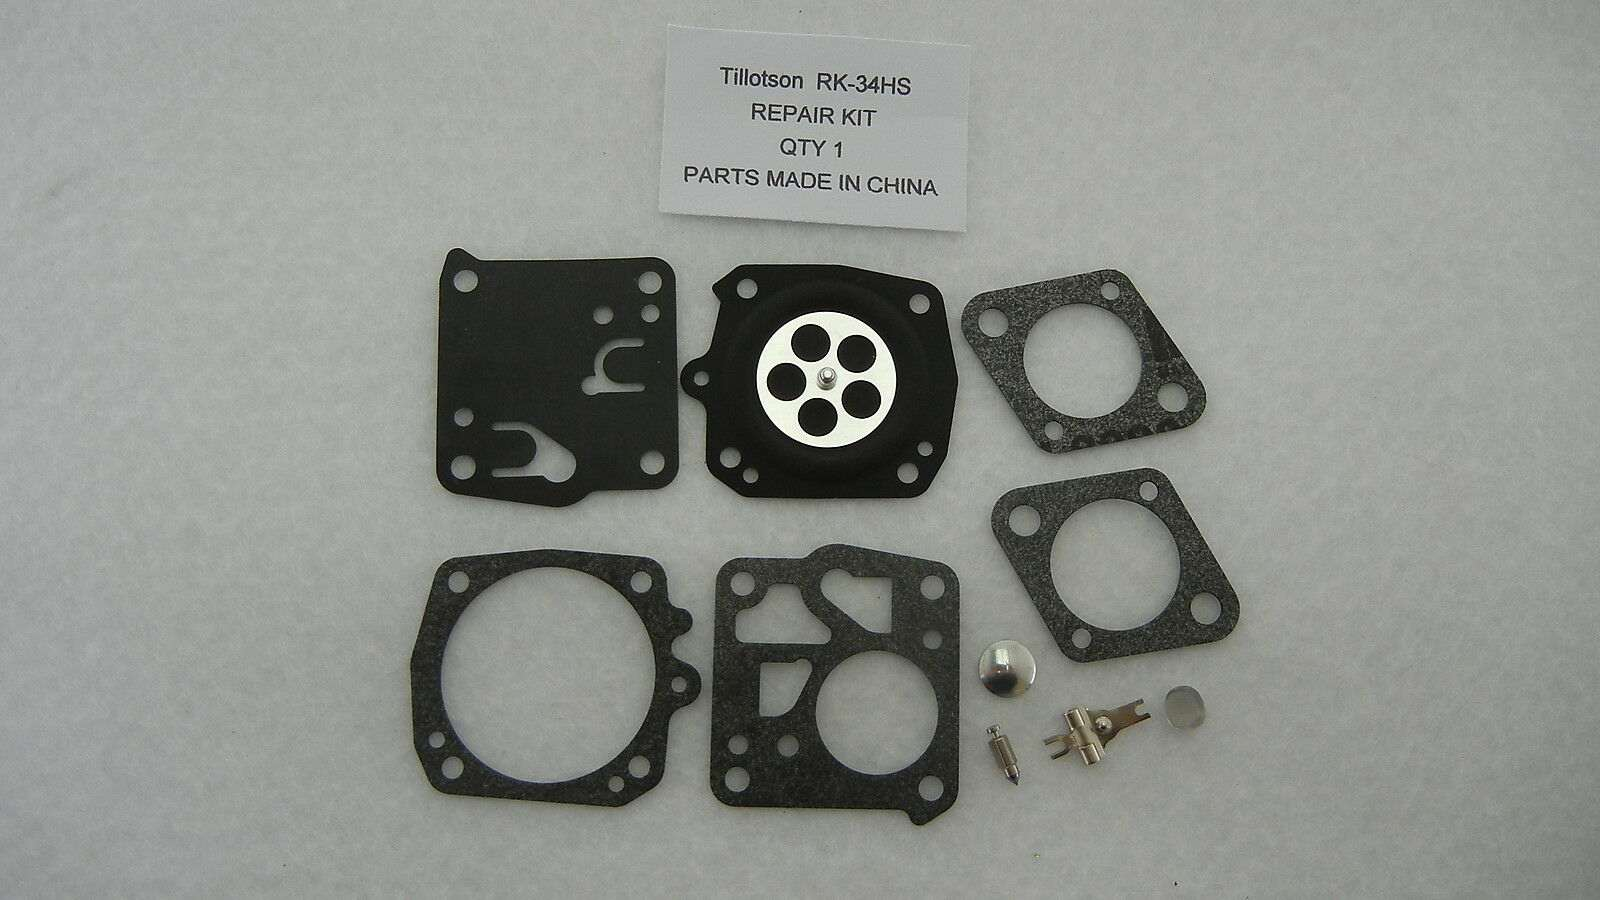 Replacement carburetor rebuild kit Tillotson RK-34HS